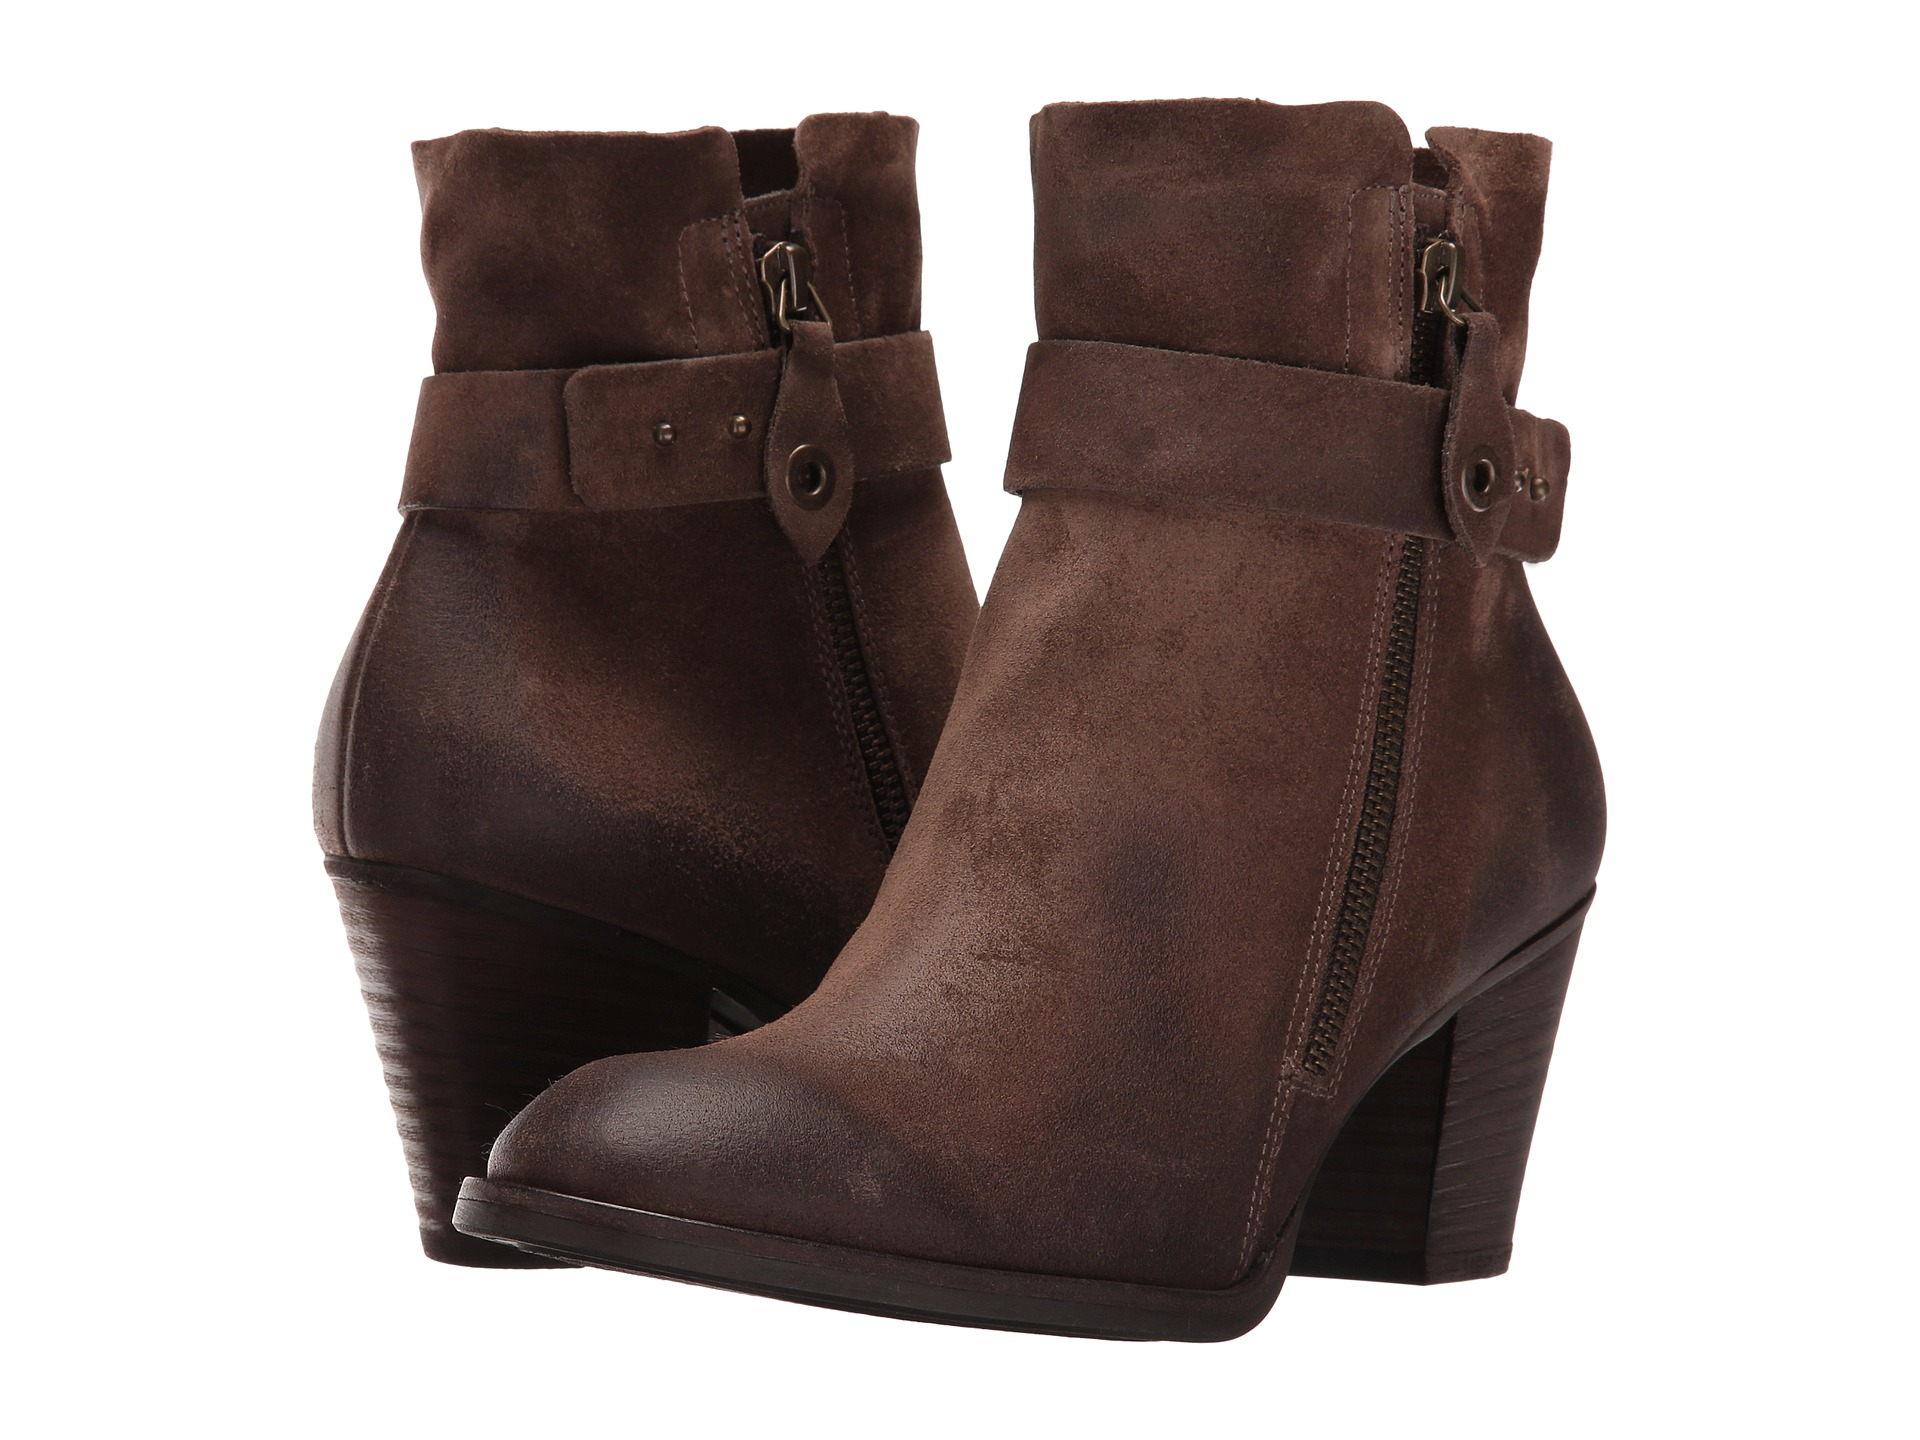 lyst paul green dallas leather ankle boots in brown. Black Bedroom Furniture Sets. Home Design Ideas